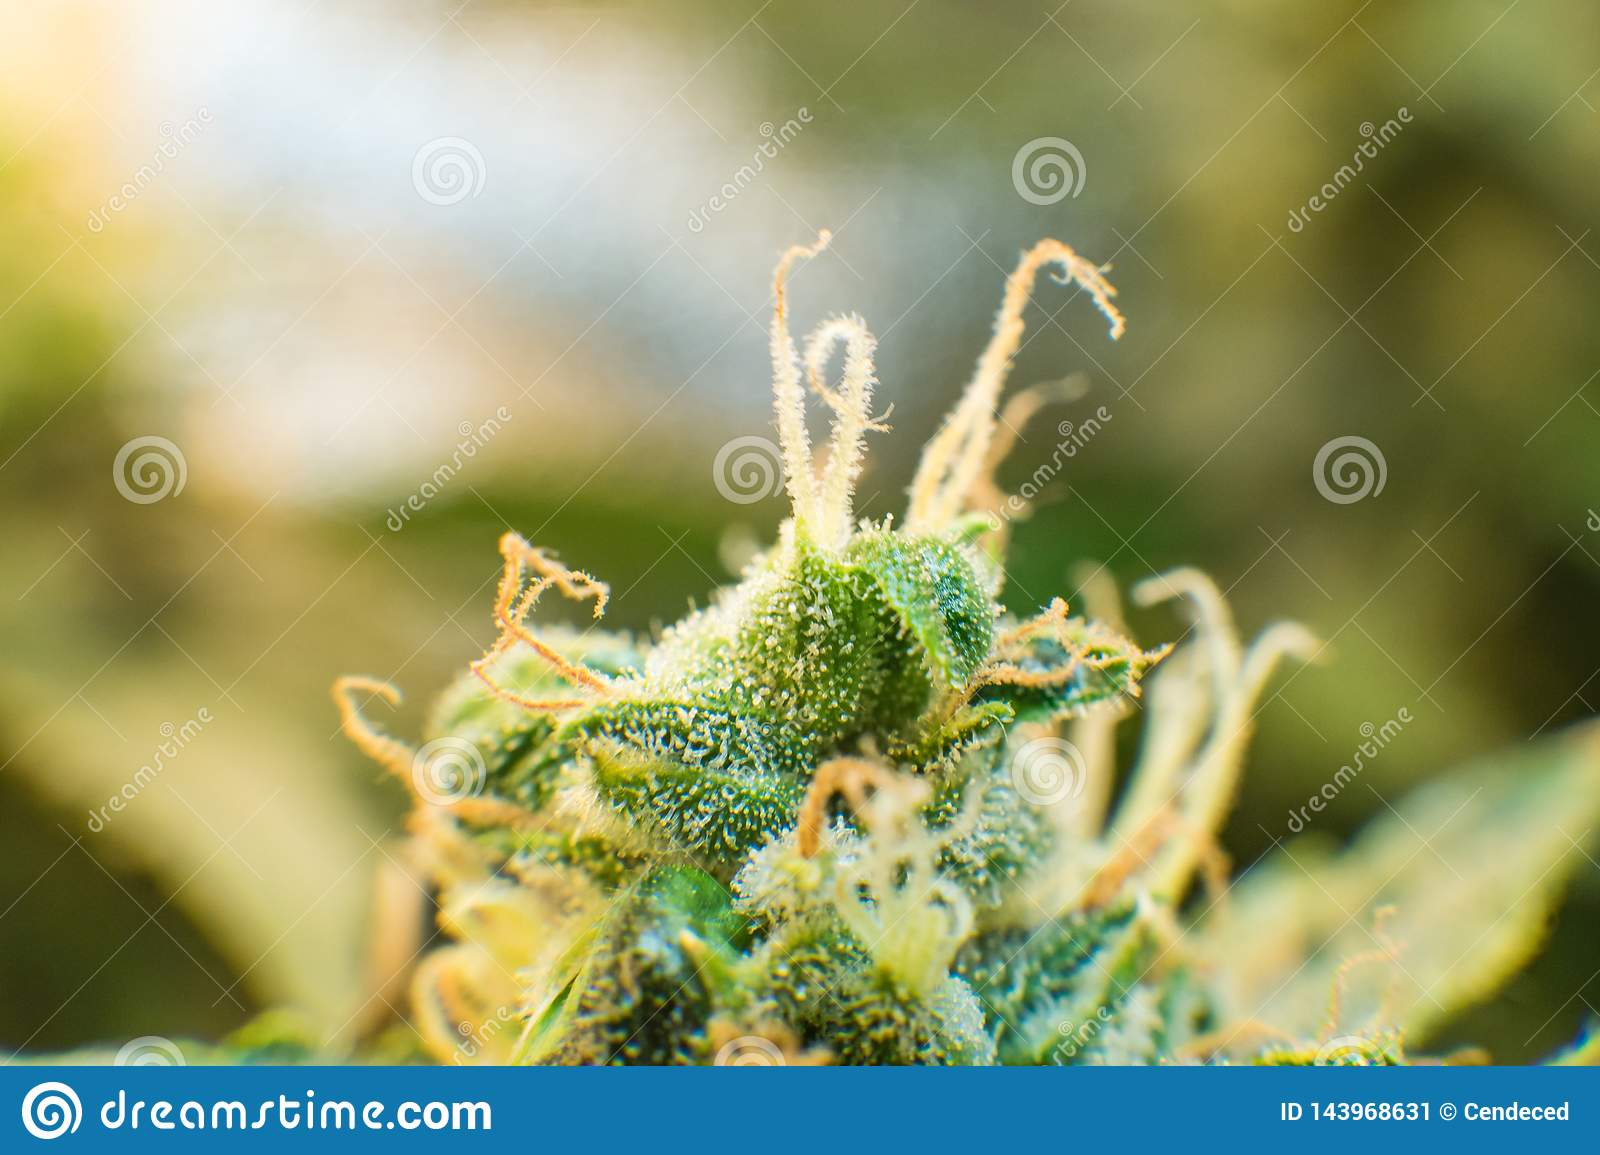 Green Background Of Flower  Young Cannabis Plant  Medicinal